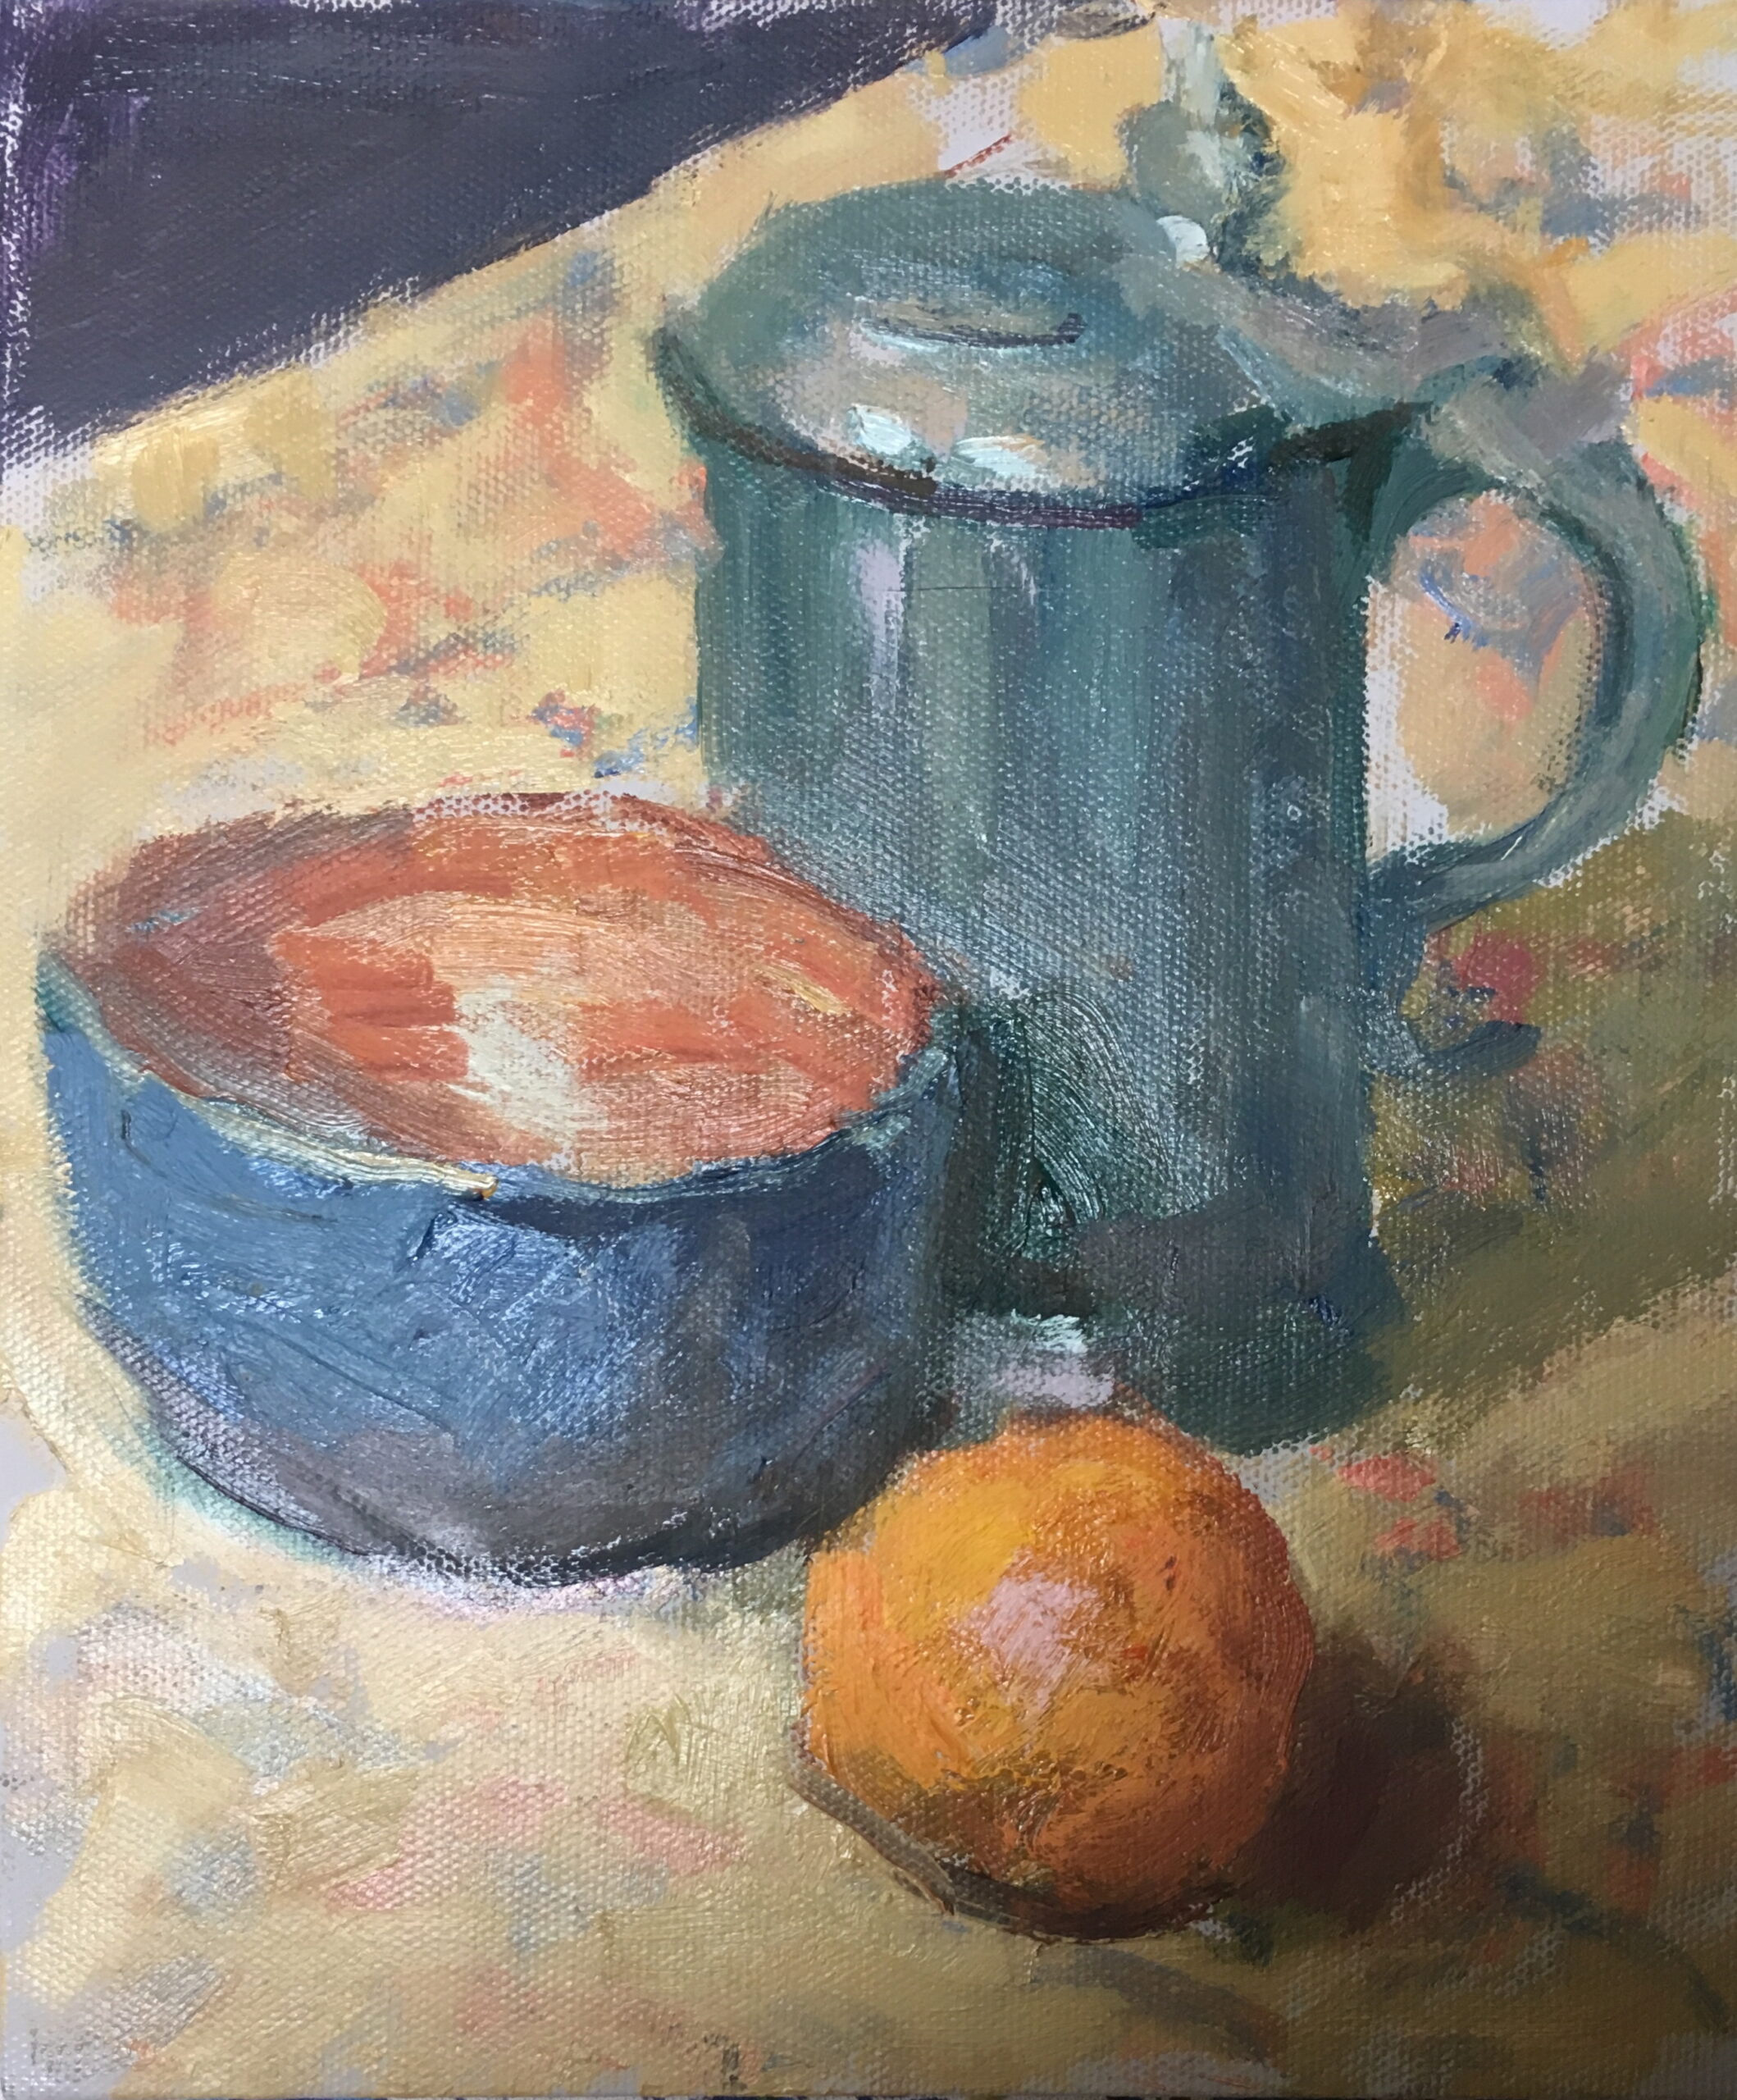 Bowl and Stein, Oil on Canvas on Panel, 10 x 8 Inches, by Susan Grisell, $200